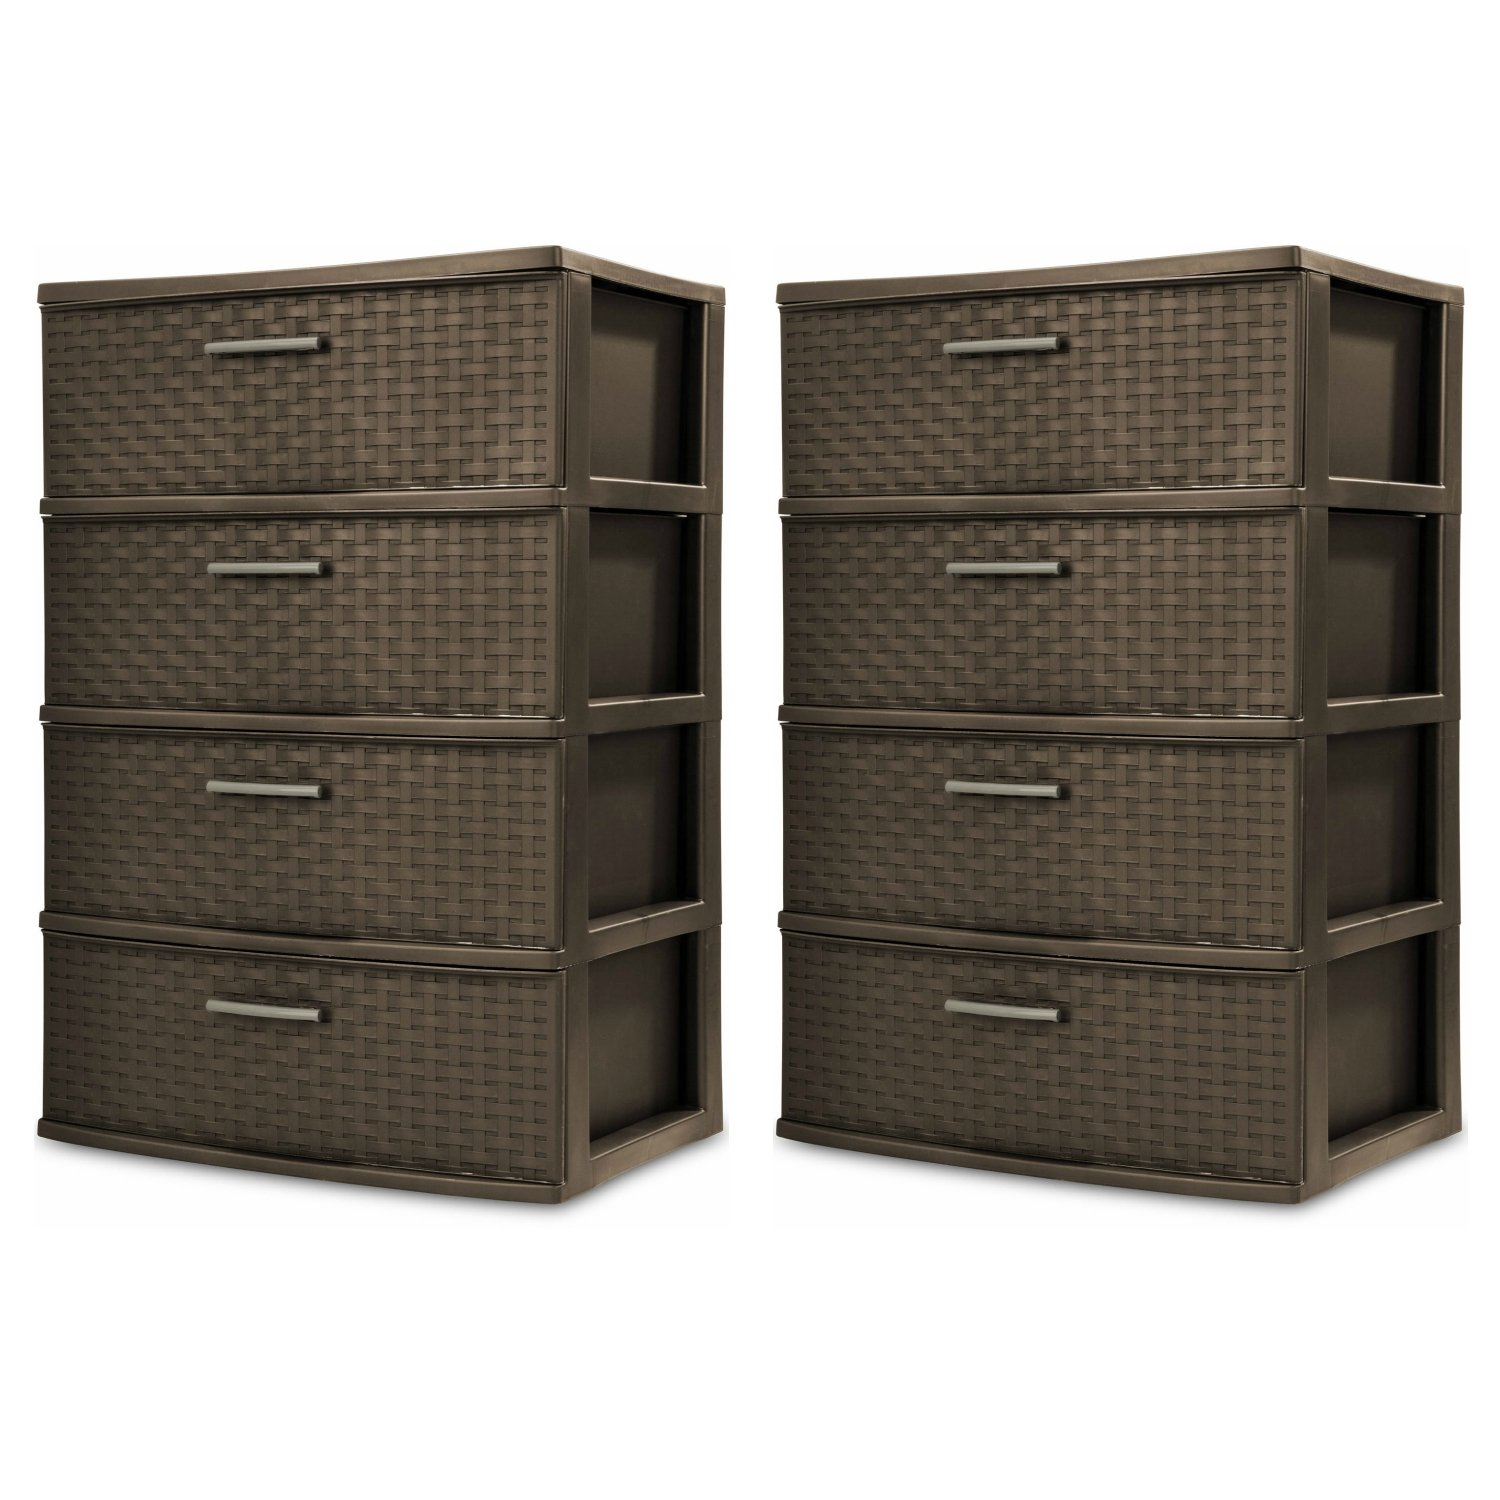 Sterilite 4-Drawer Wide Weave Tower, Espresso Frame & Drawers w/ Driftwood Handles, 2-Pack